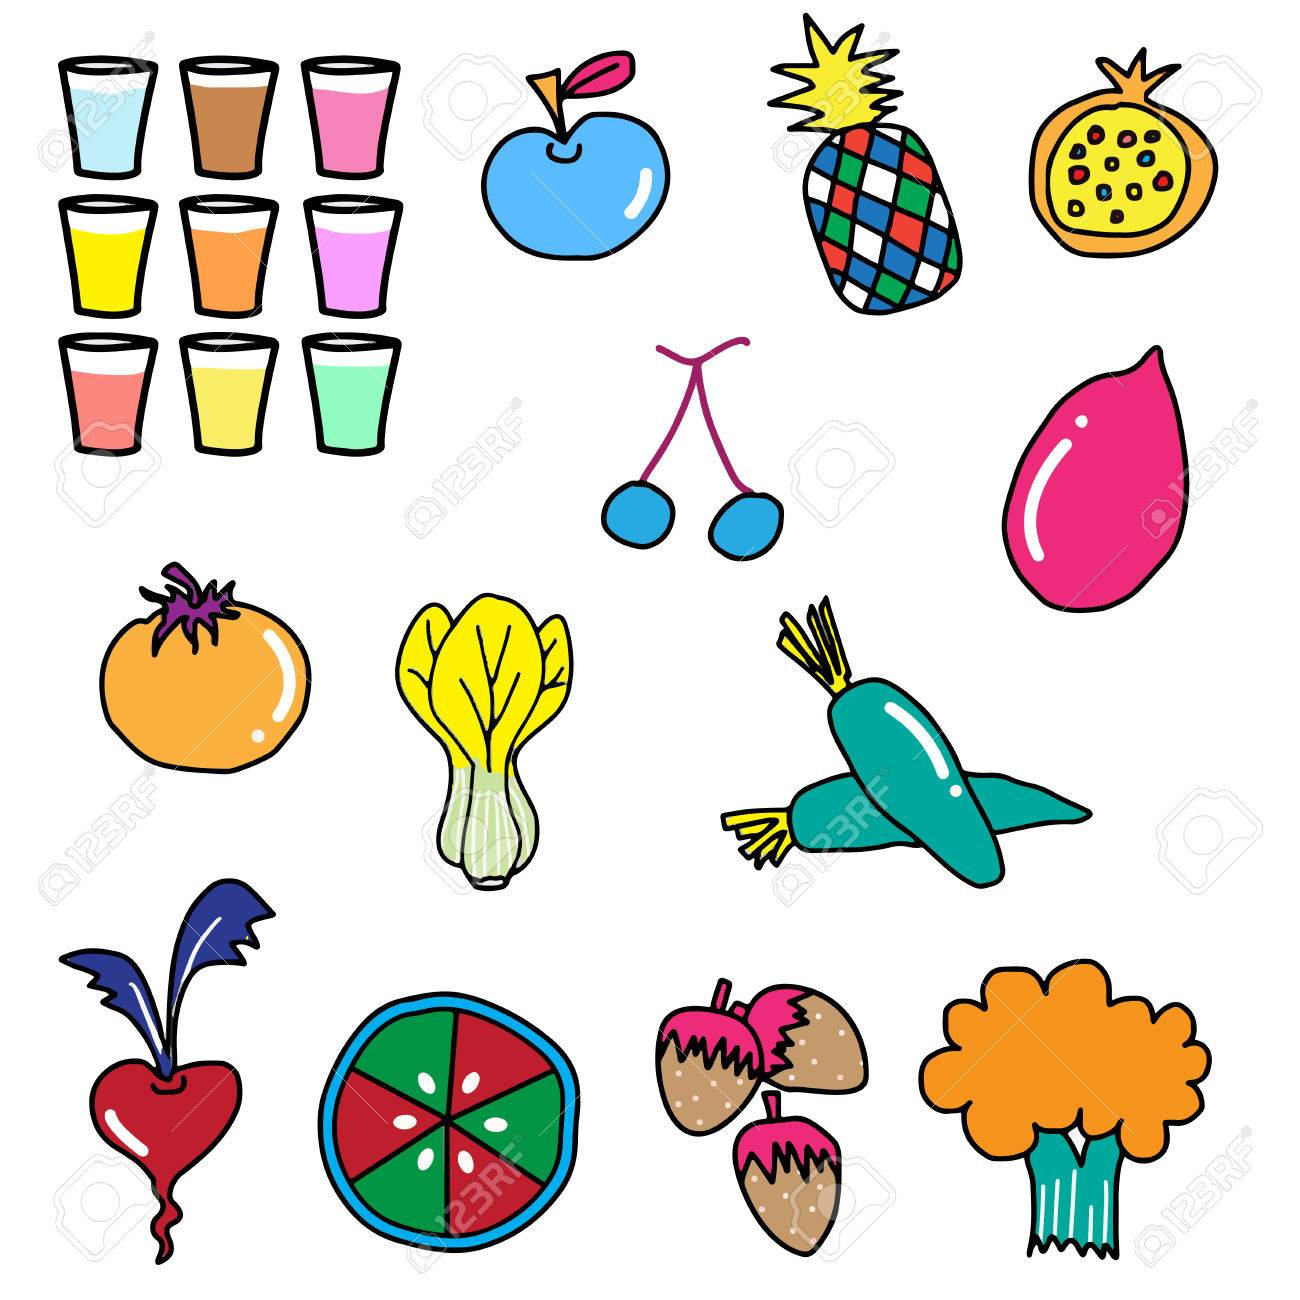 1300x1300 Colorful Vegetable Fruit Drawing Illustration Royalty Free